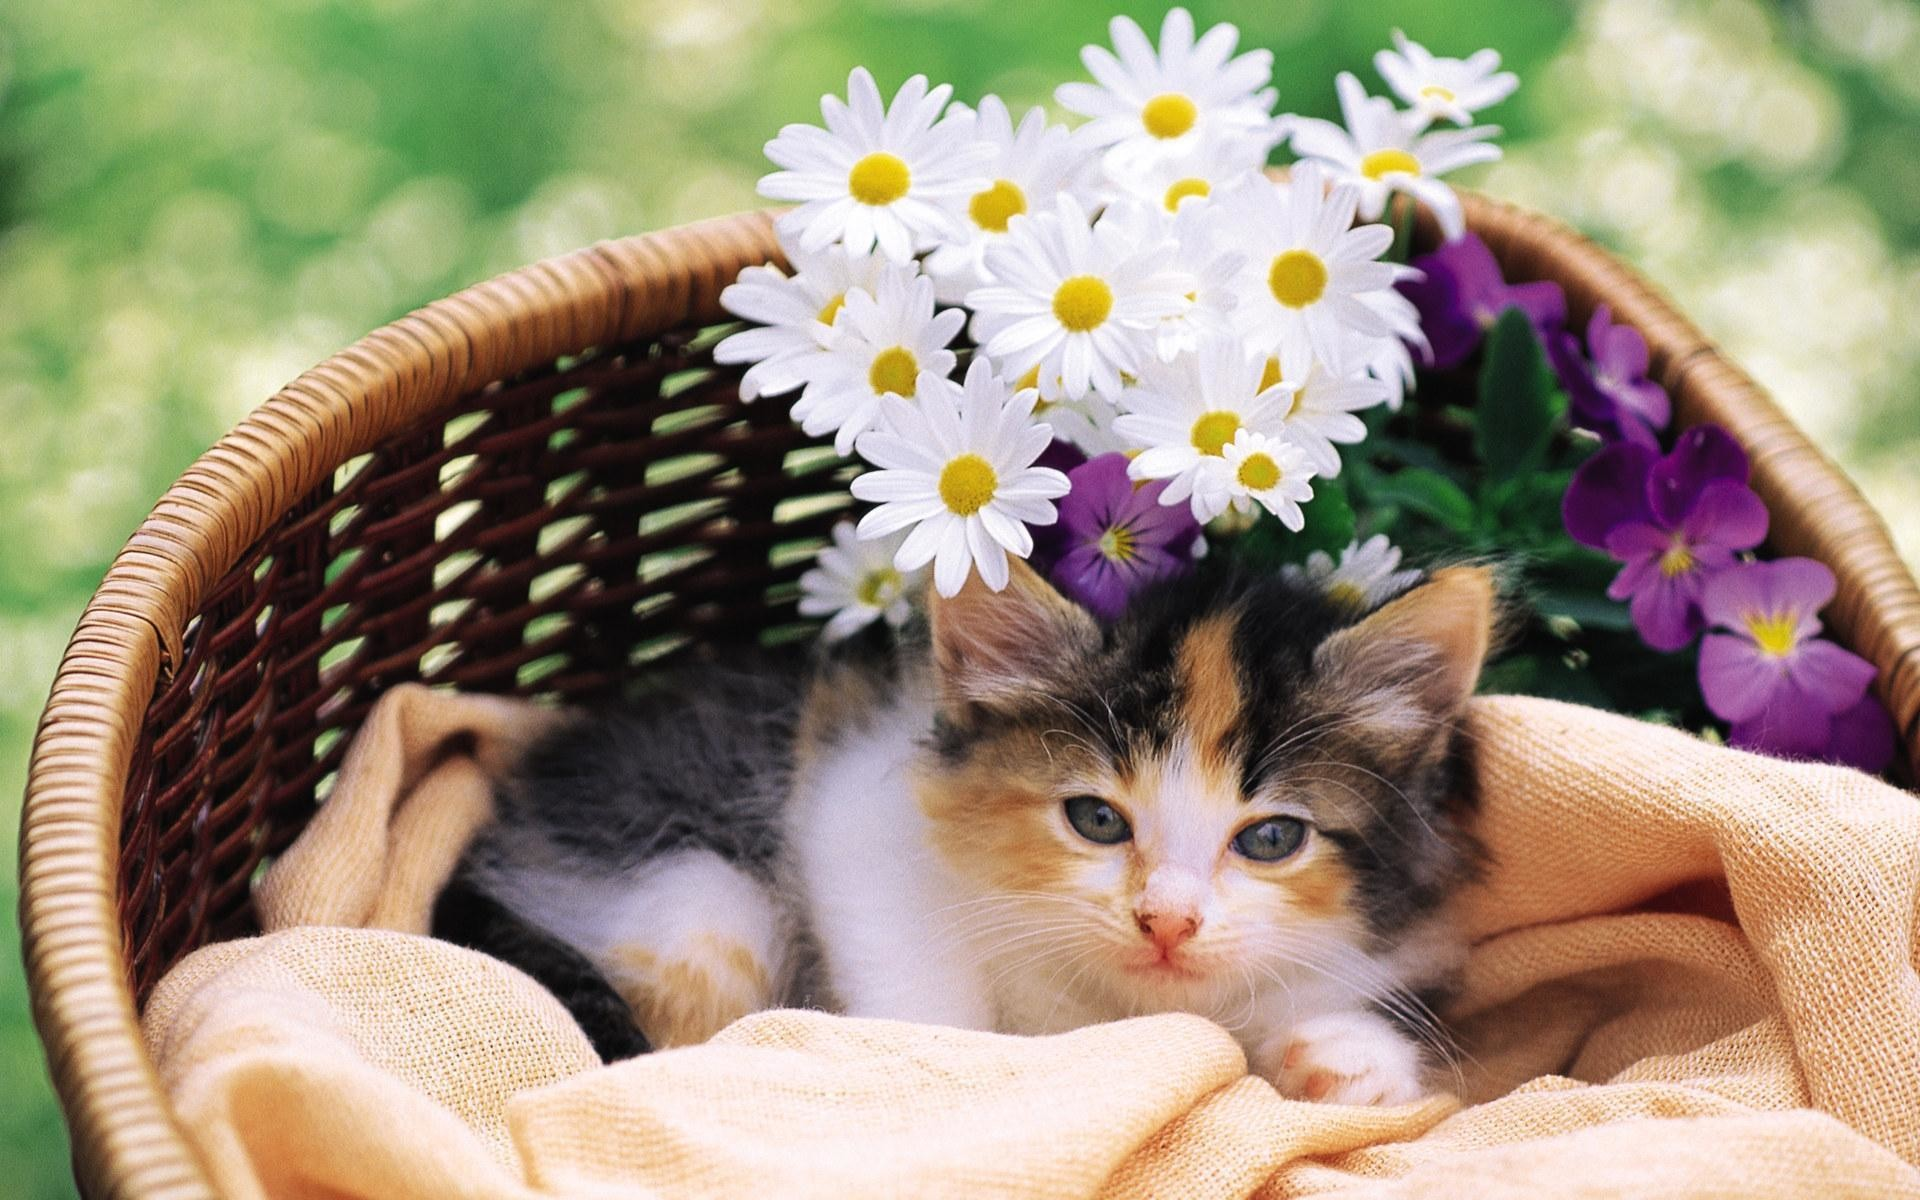 Find this Pin and more on Cats and Kittens by autumnsunshinec.